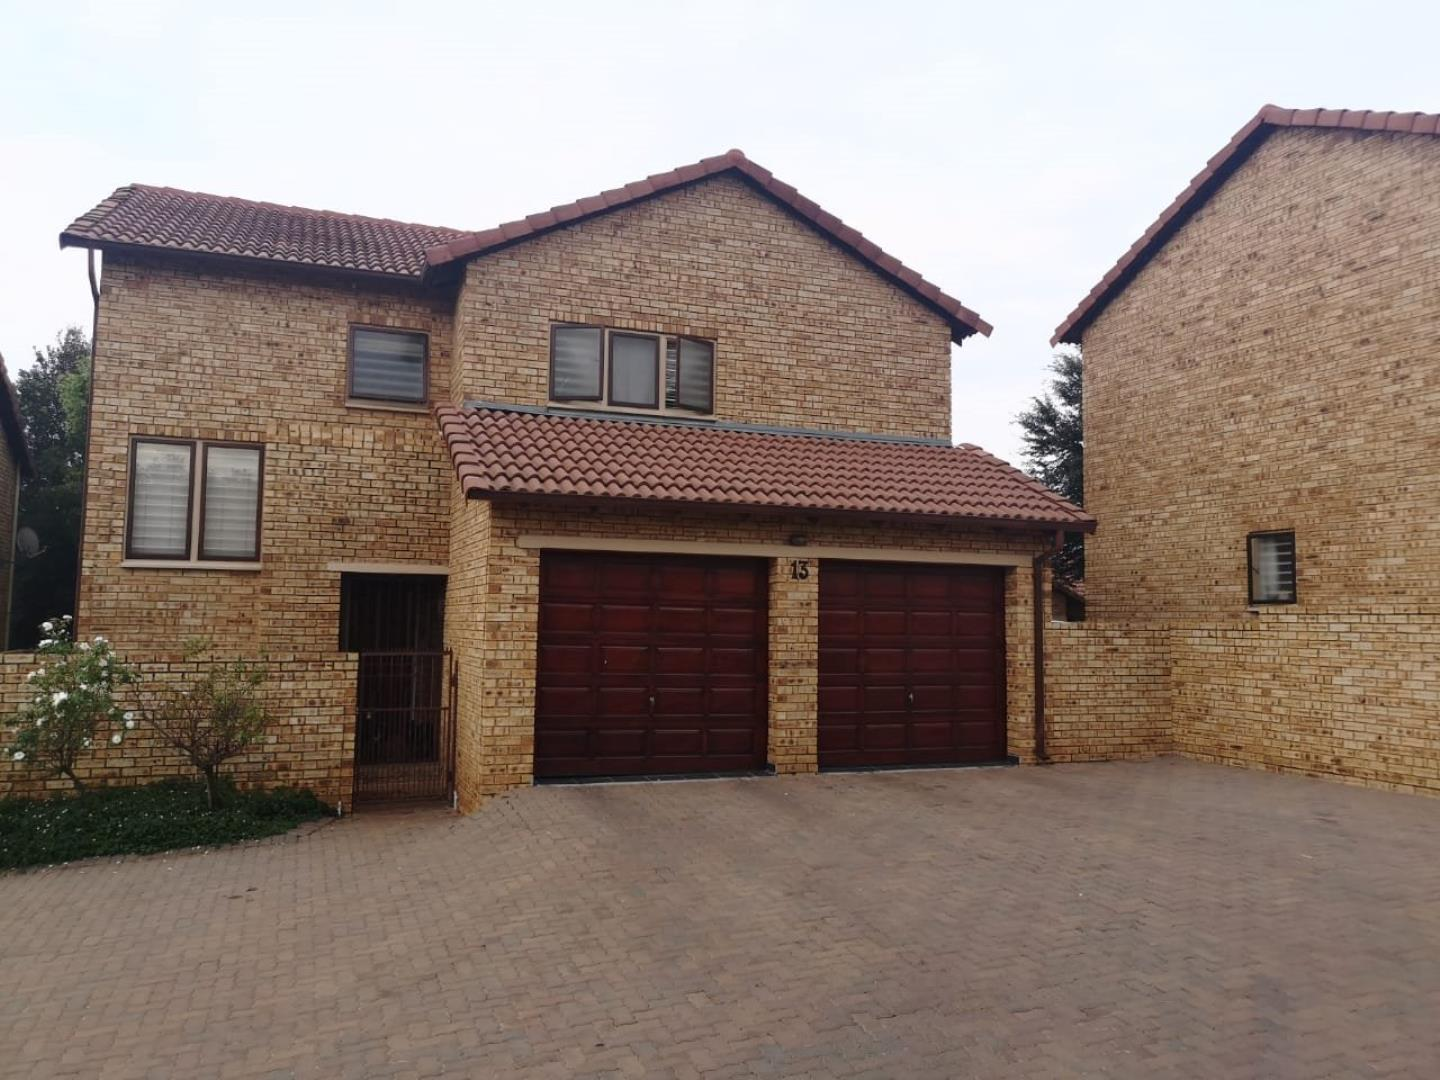 4 Bedroom  Townhouse for Sale in Roodepoort - Gauteng